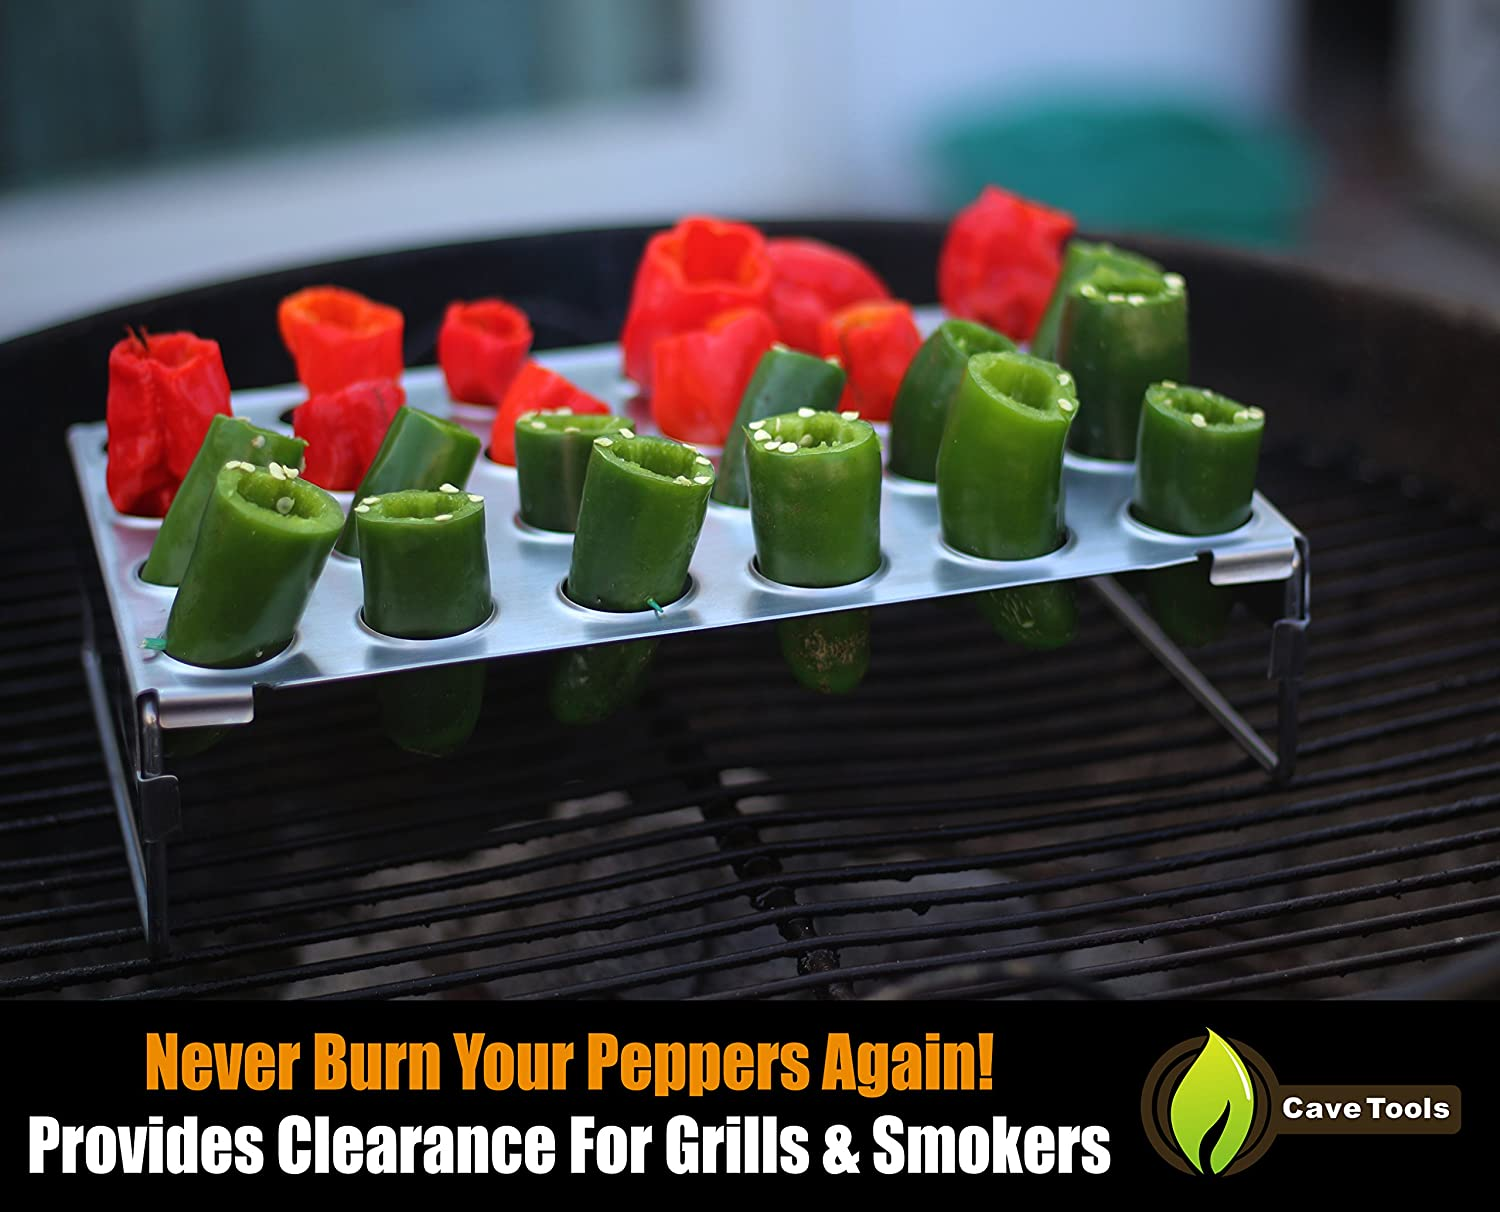 Jalapeno Grill Rack & Pepper Corer Tool - Large 24 Capacity Roaster - Holder Also For Cooking Chili or Chicken Legs & Wings Roasting on BBQ Smoker or Oven - Dishwasher Safe Stainless Steel Accessories : Garden & Outdoor